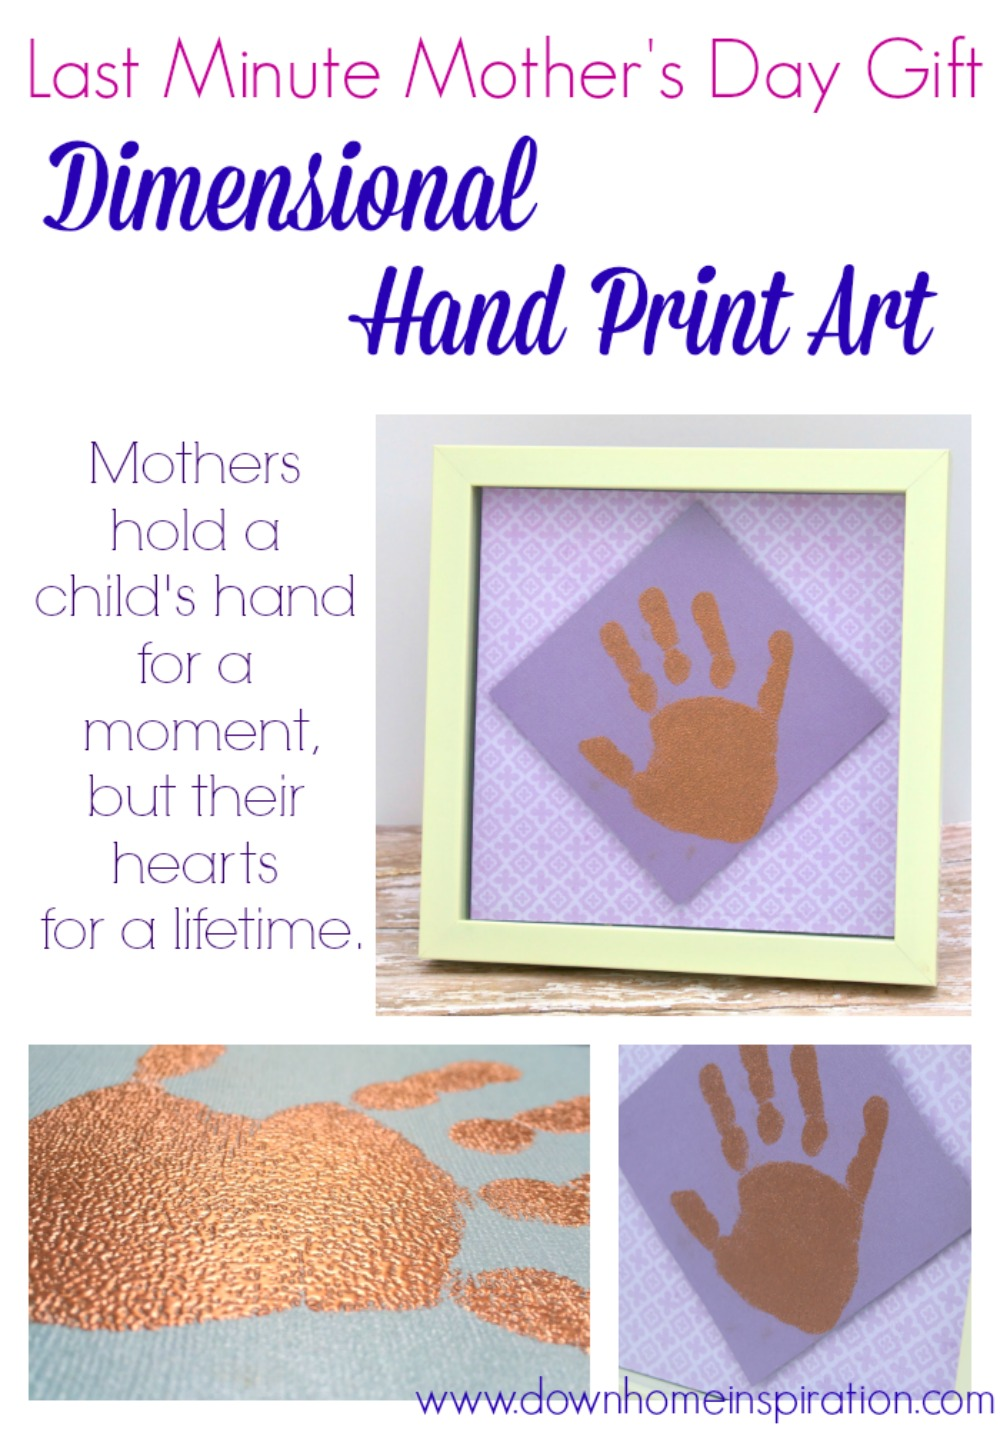 Dimensional Hand Print Art - Last Minute Mother's Day Gift